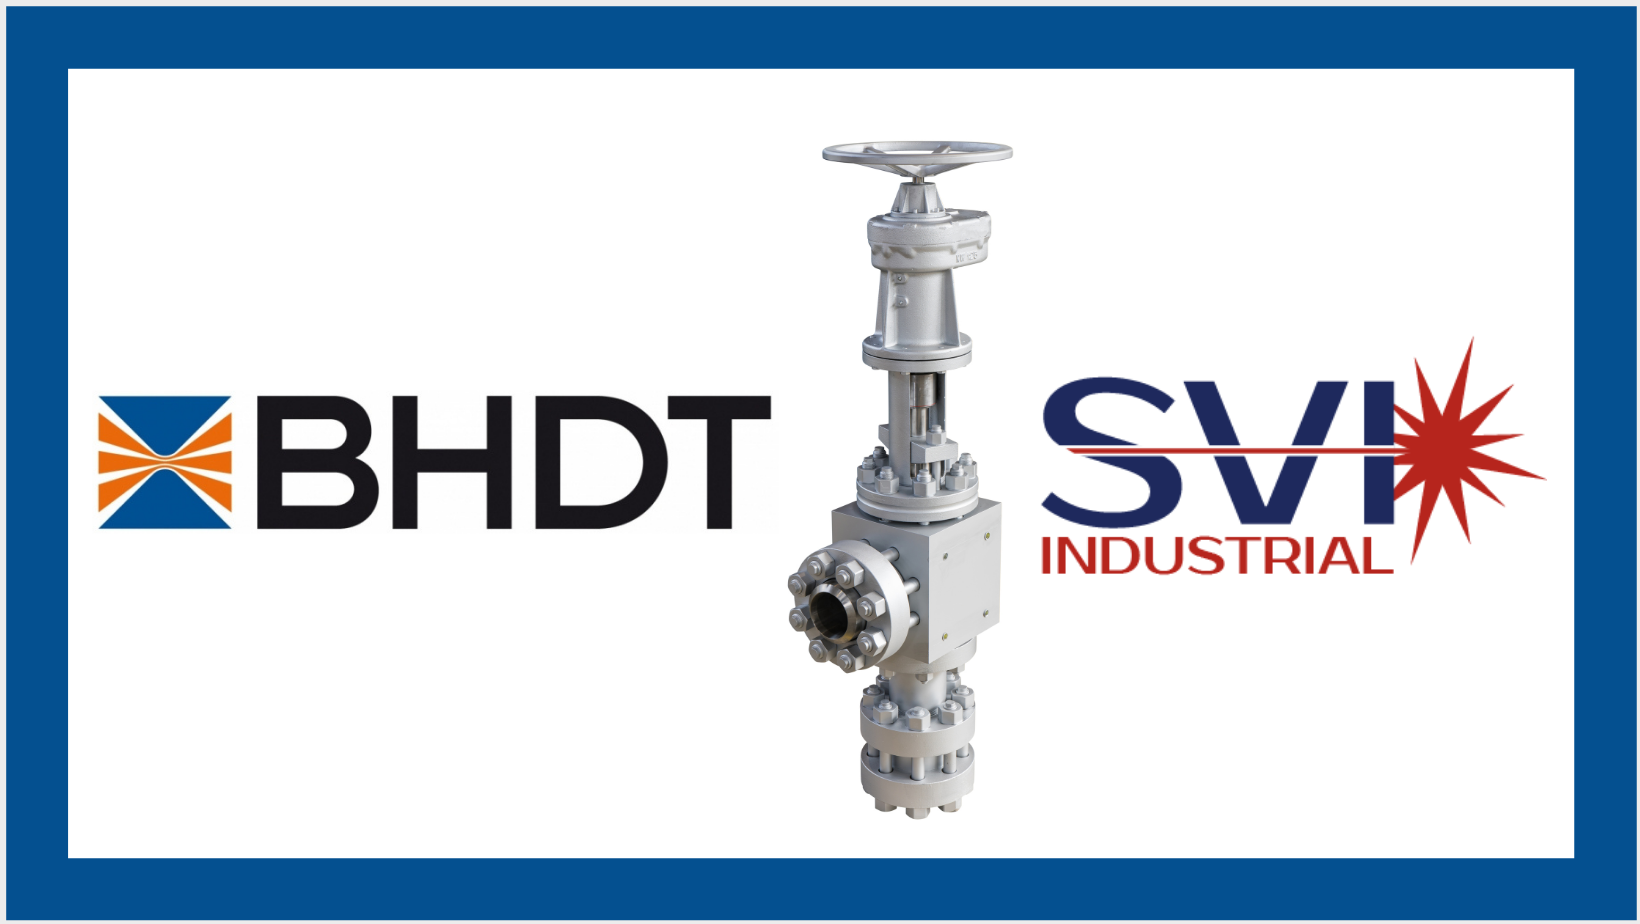 SVI Industrial Provides Faster Support Service for U.S. and Canadian Customers of BHDT